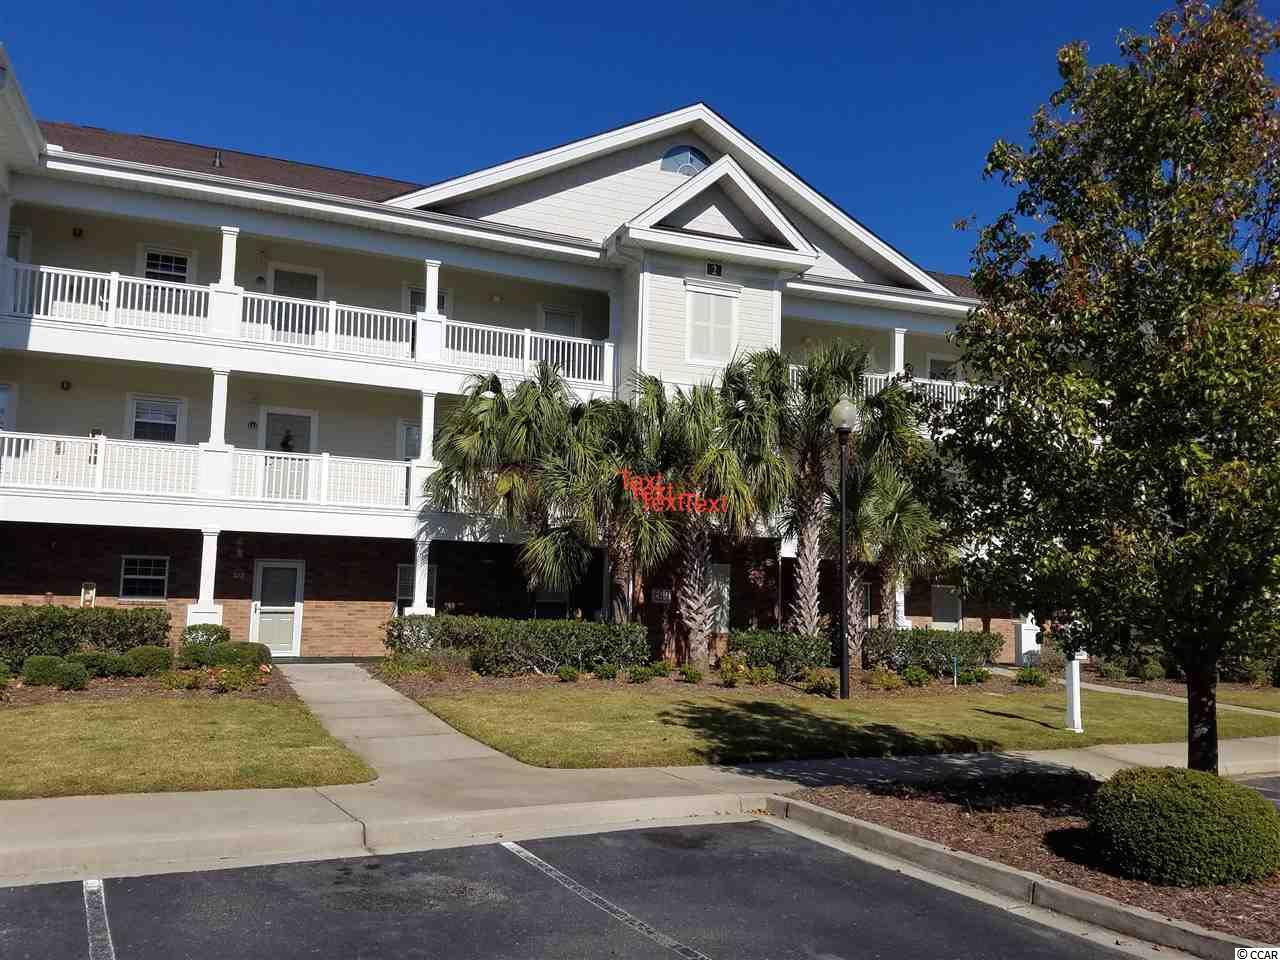 Condo For Sale At River Xing Brft In North Myrtle Beach South Carolina Unit 232 Listing Mls